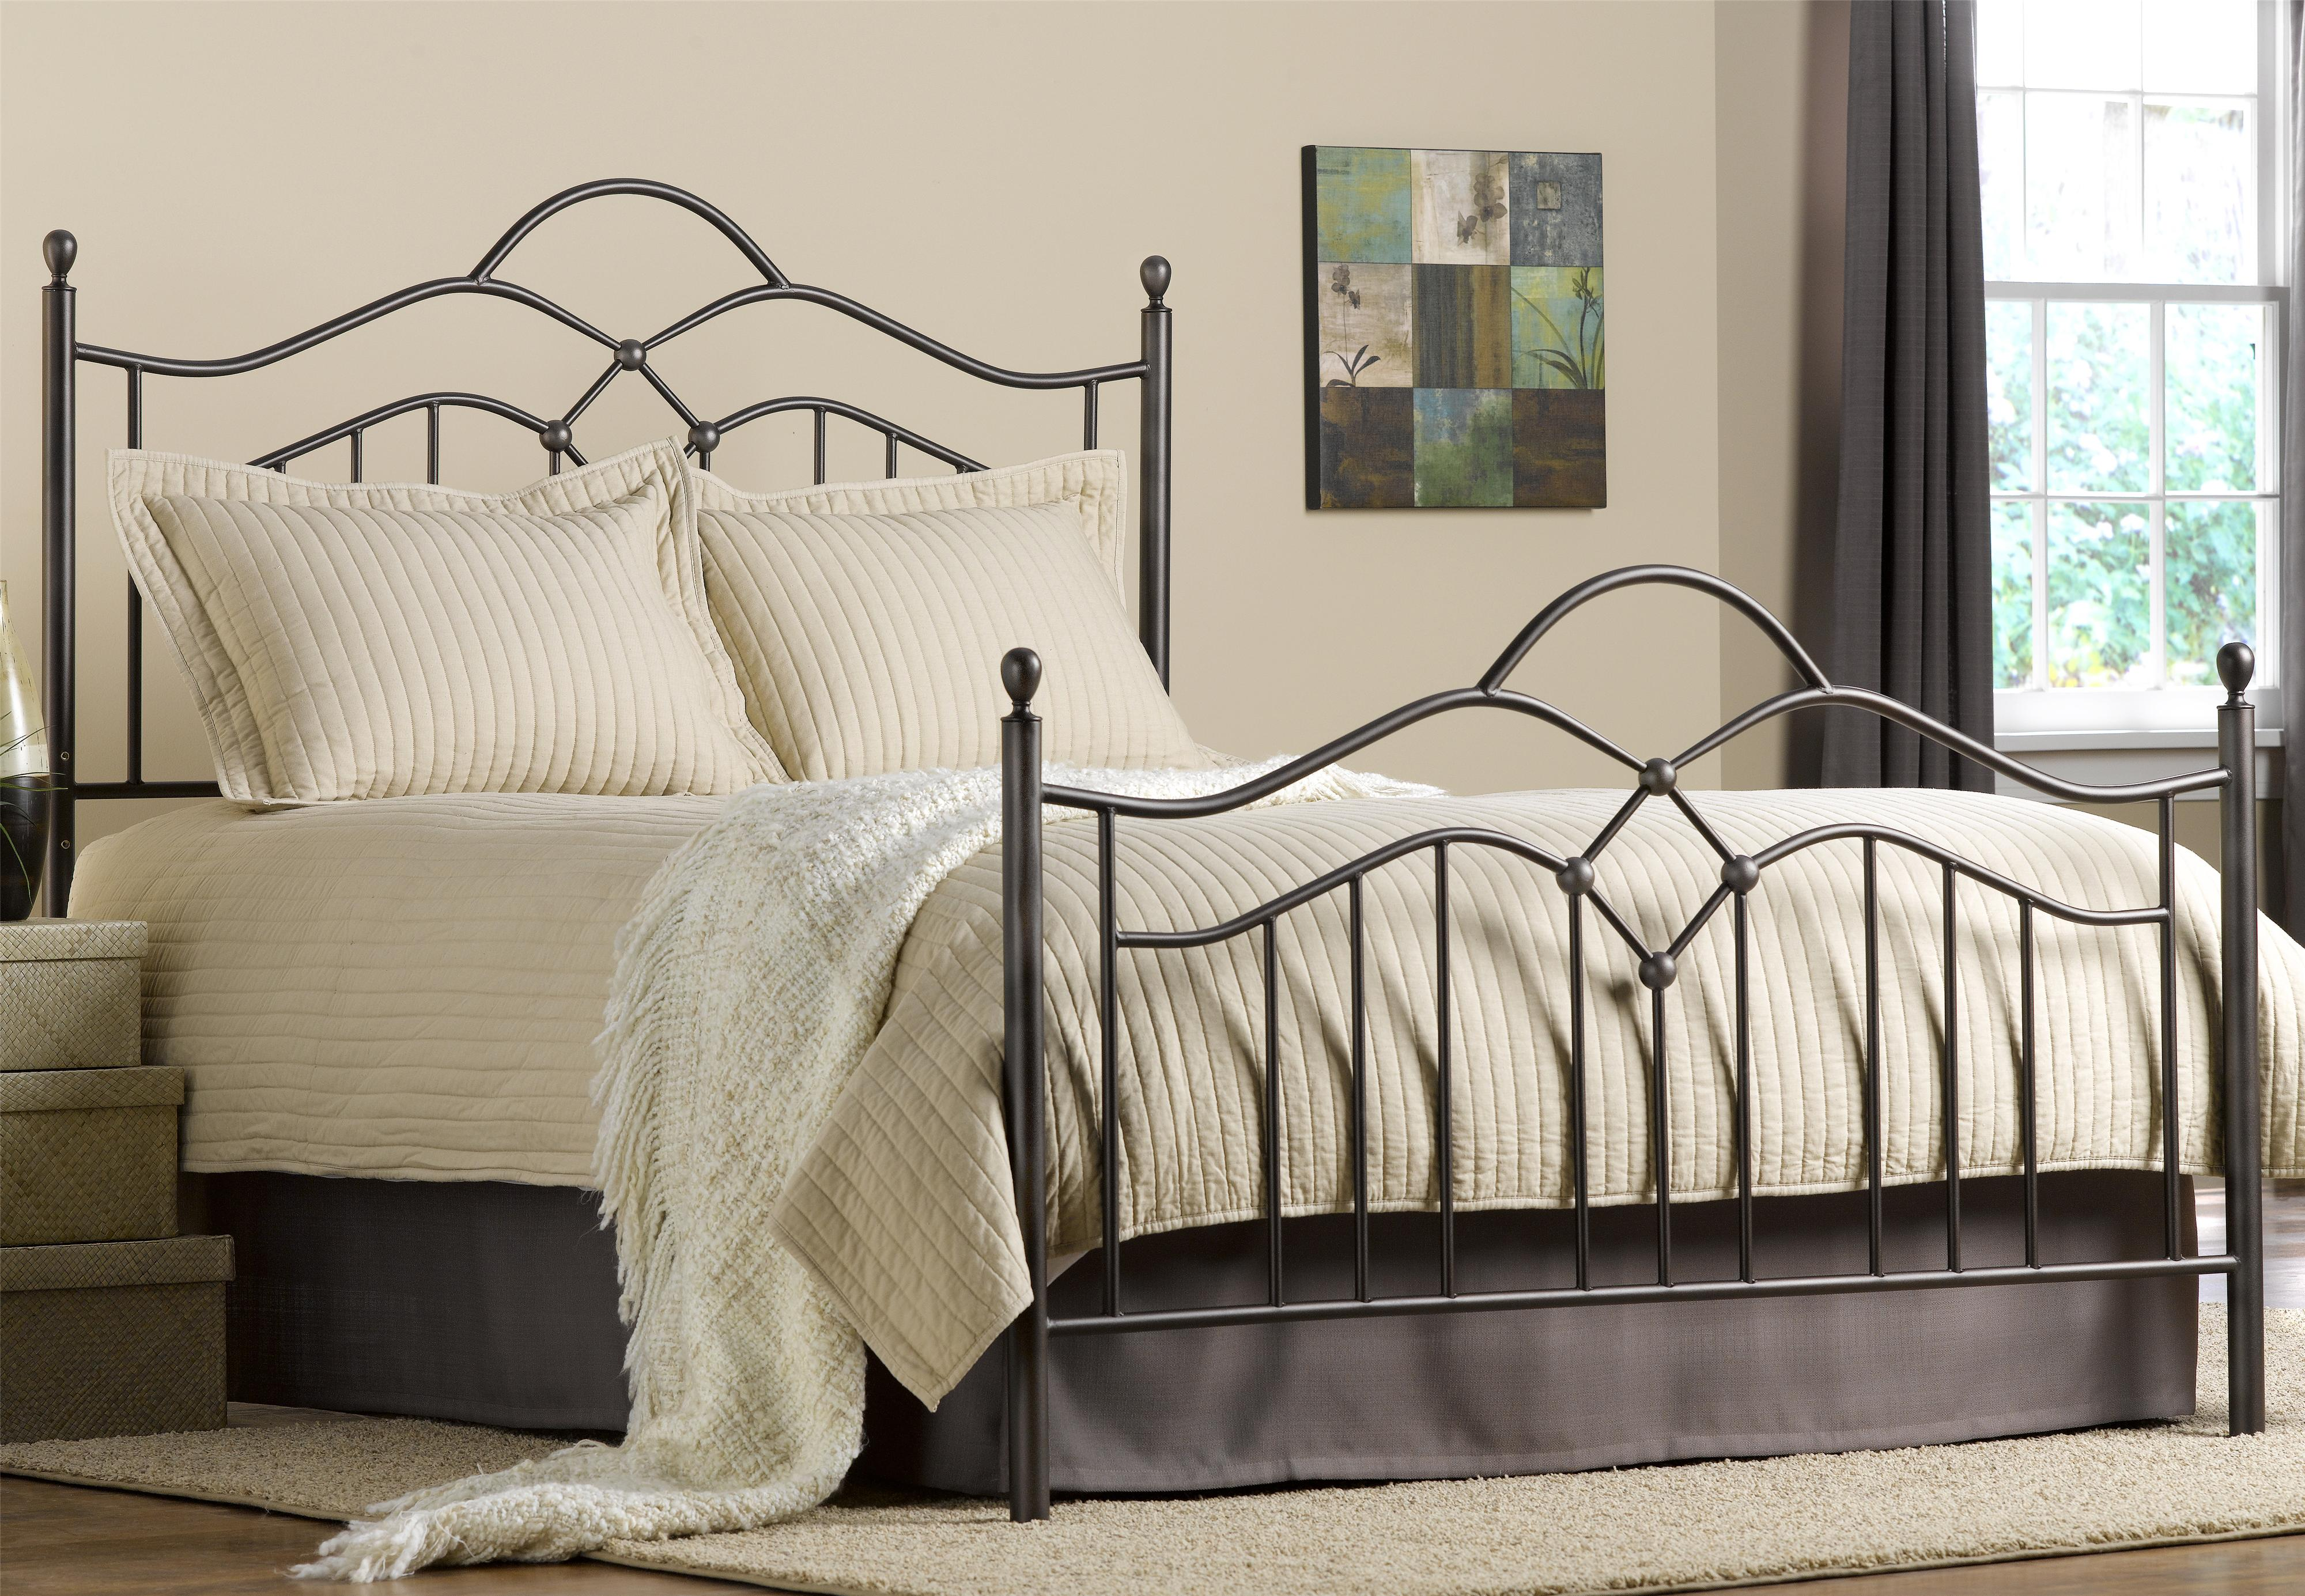 Hillsdale Metal Beds Queen Oklahoma Bed - Item Number: 1300BQR